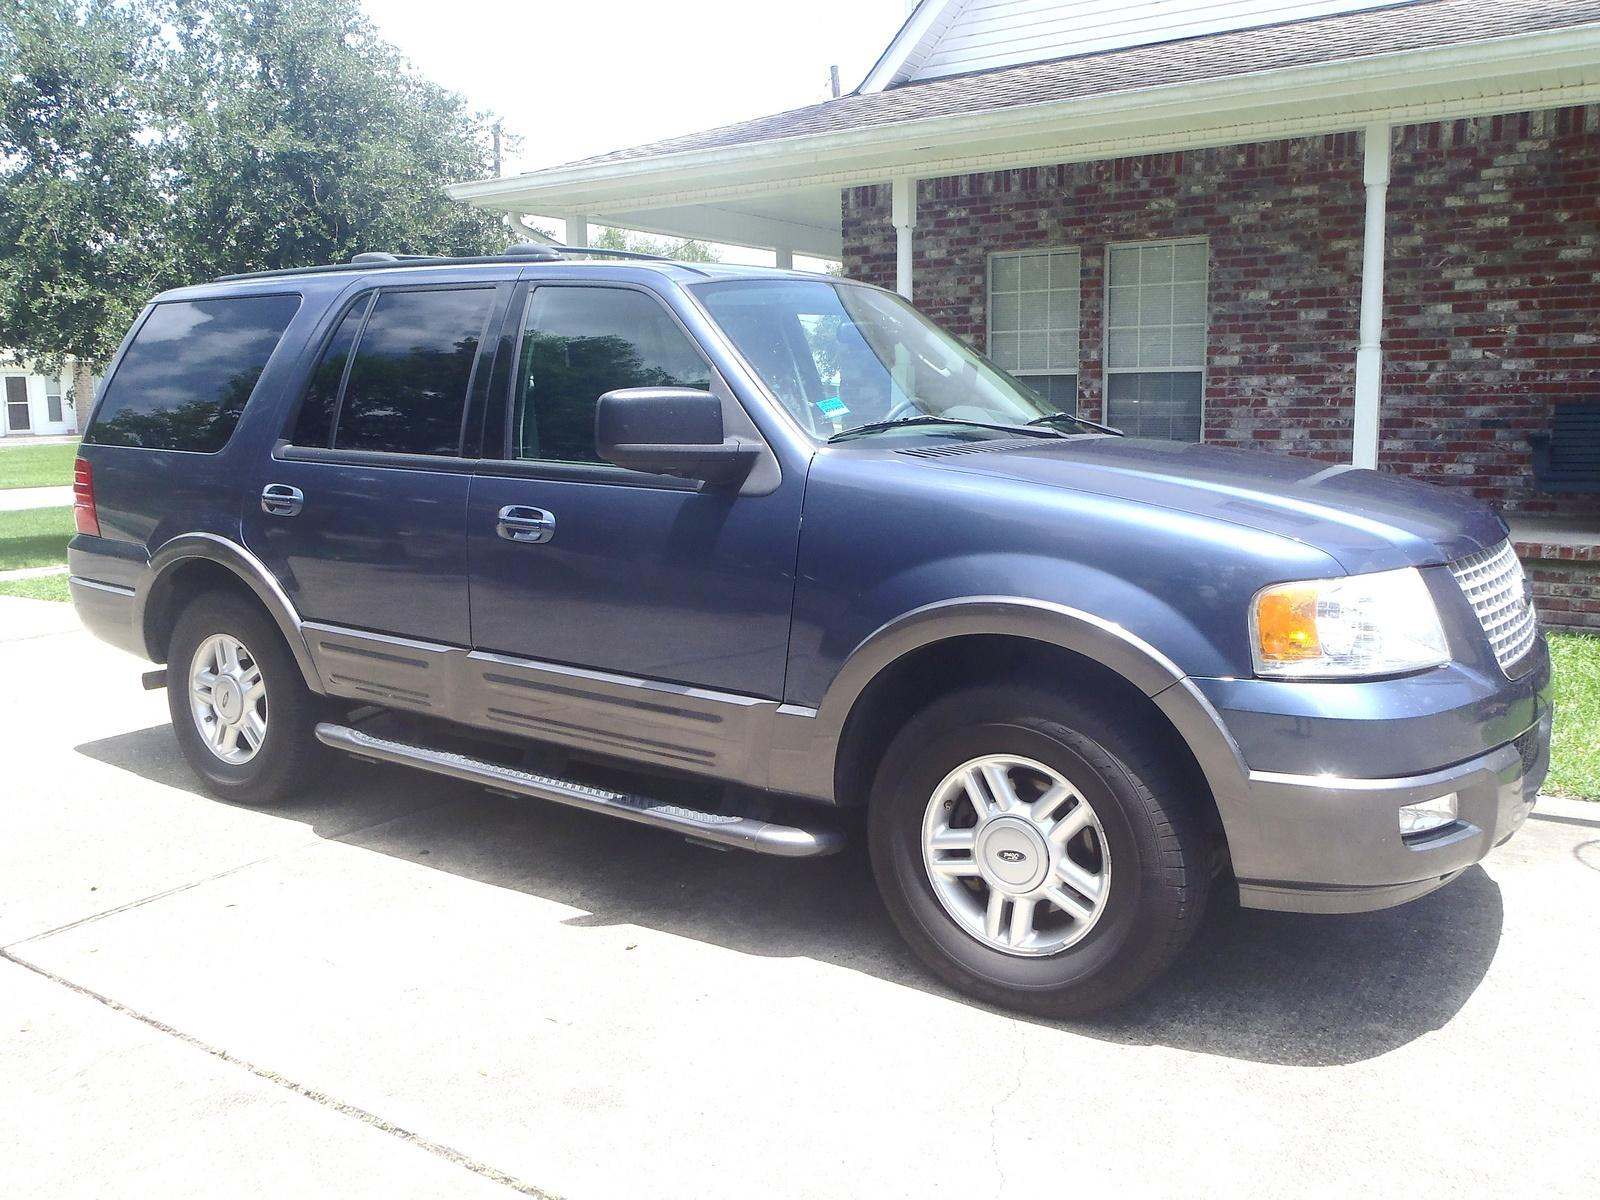 800 1024 1280 1600 origin 2004 ford expedition